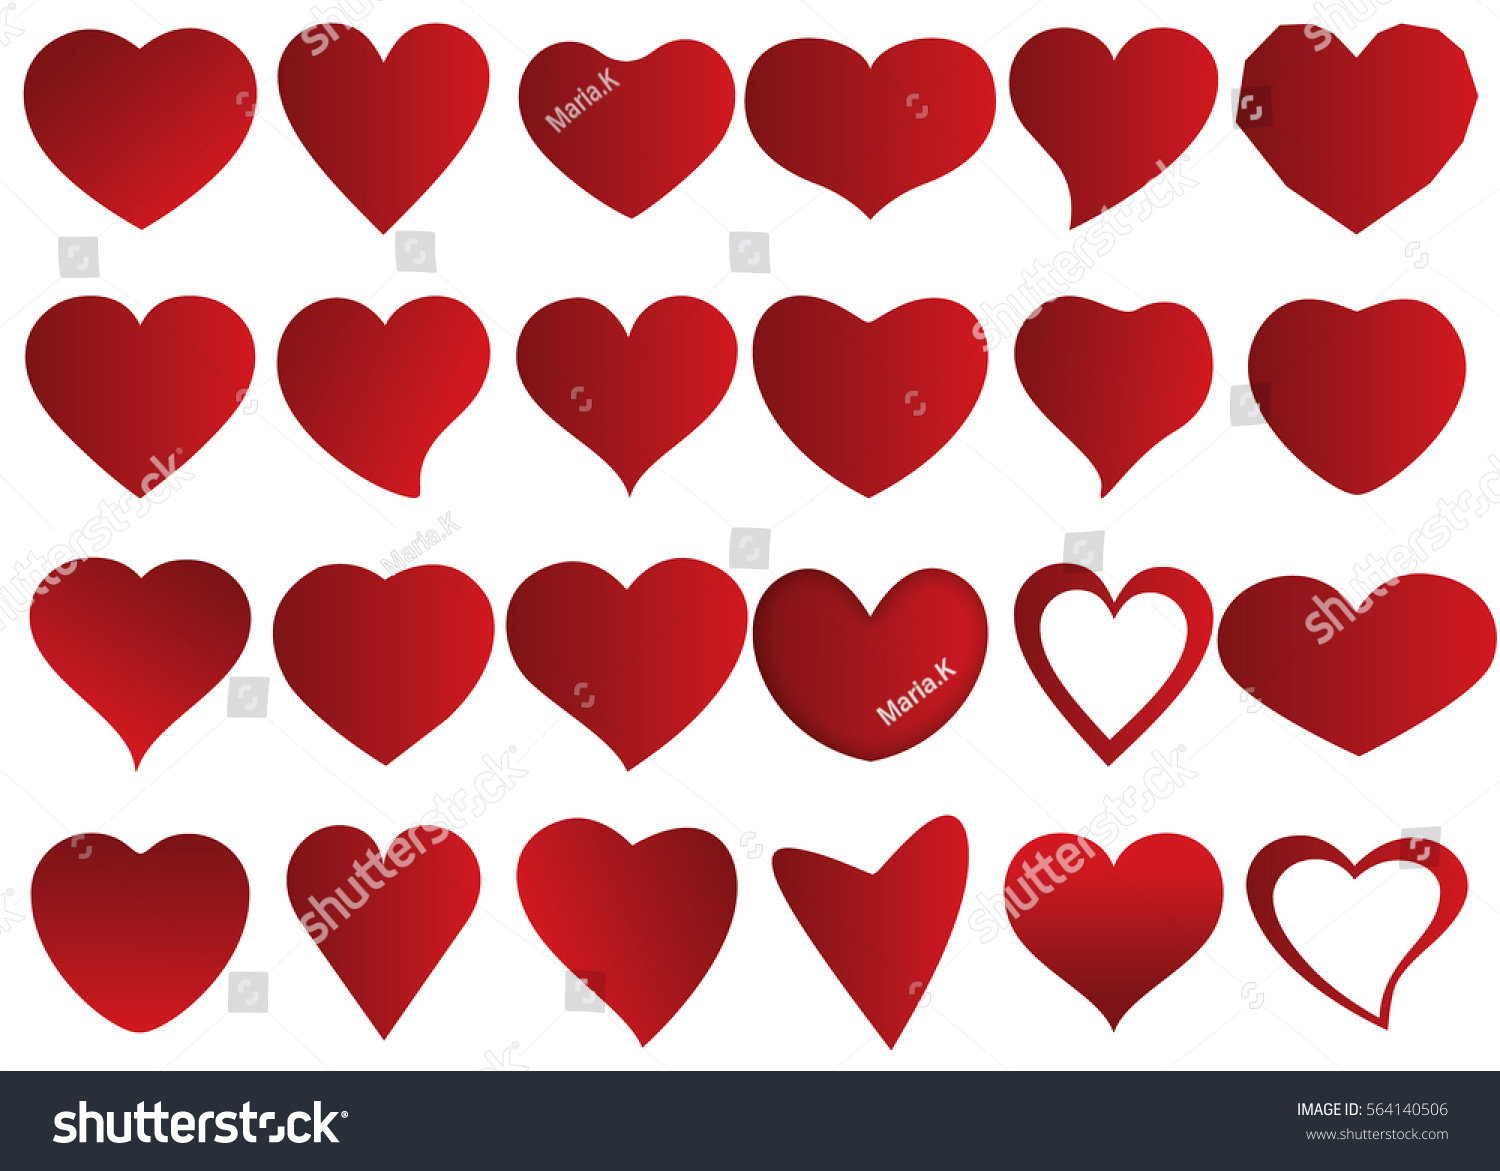 Red Heart Vector Icon Background Set Stock Vector